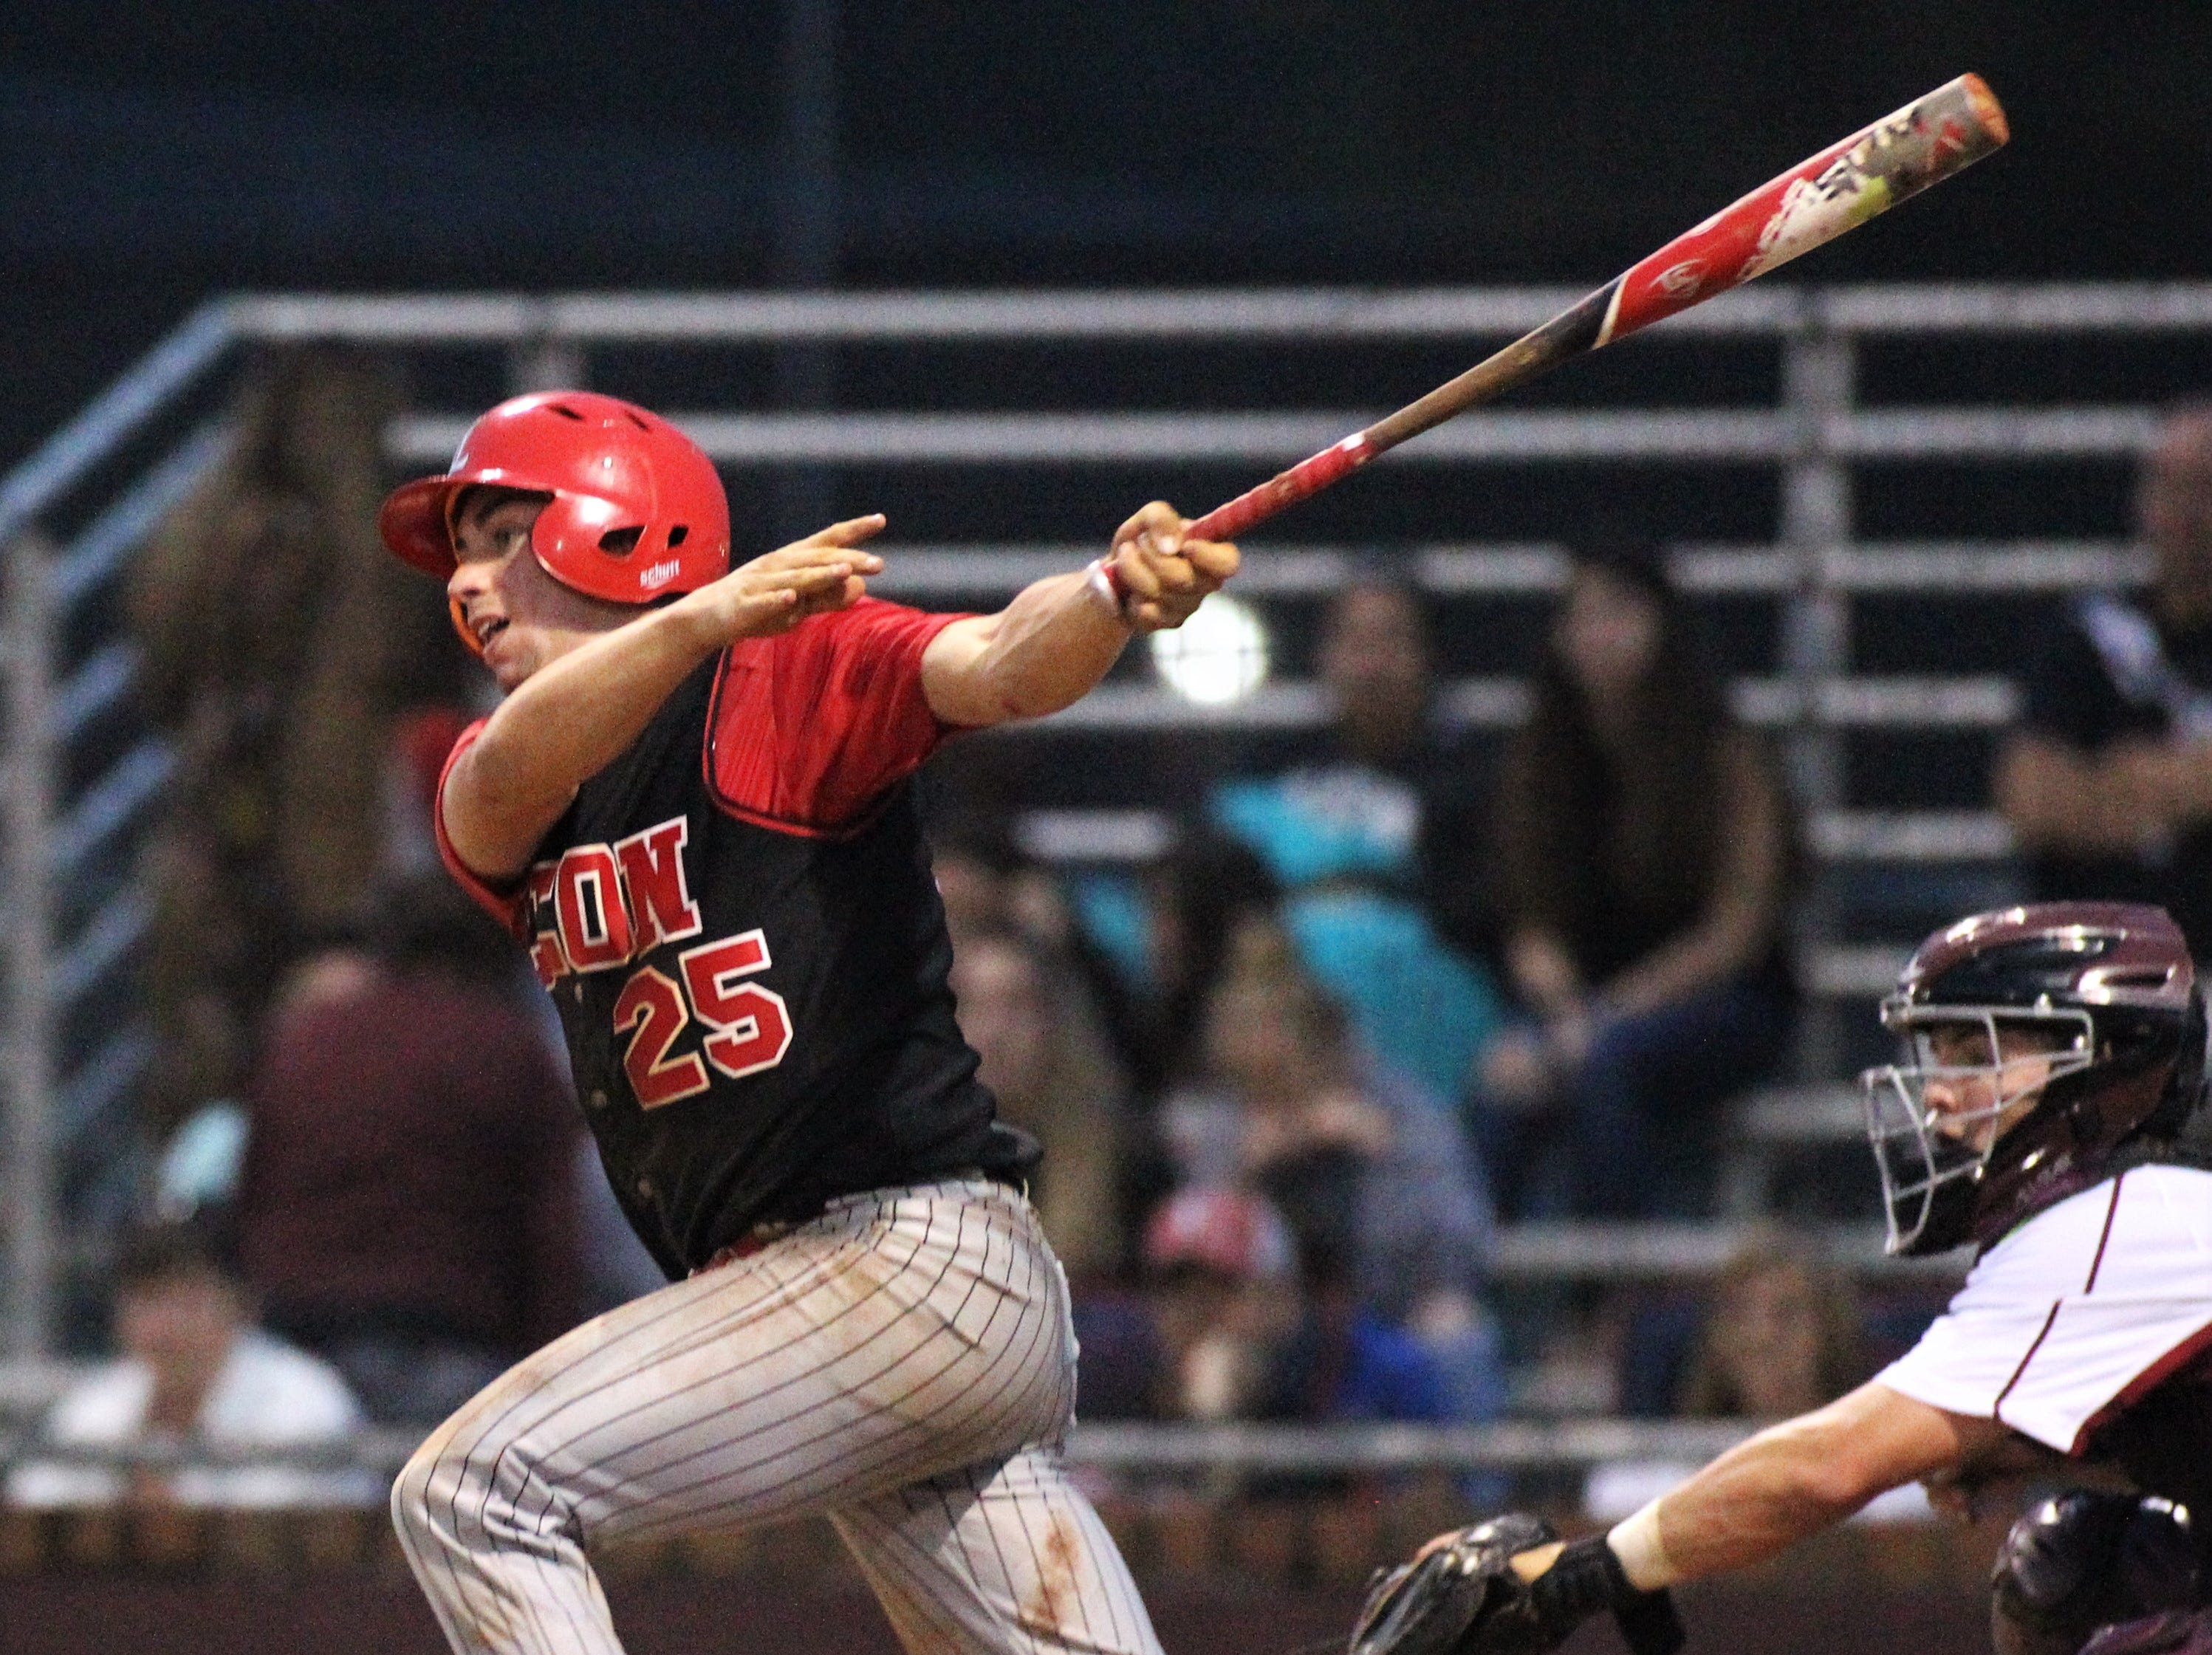 Leon senior Tyler Borges watches a hit as Chiles won an 11-6 home game against Leon on Friday, April 5, 2019, to force a season split. The Lions won 3-0 earlier in the week.